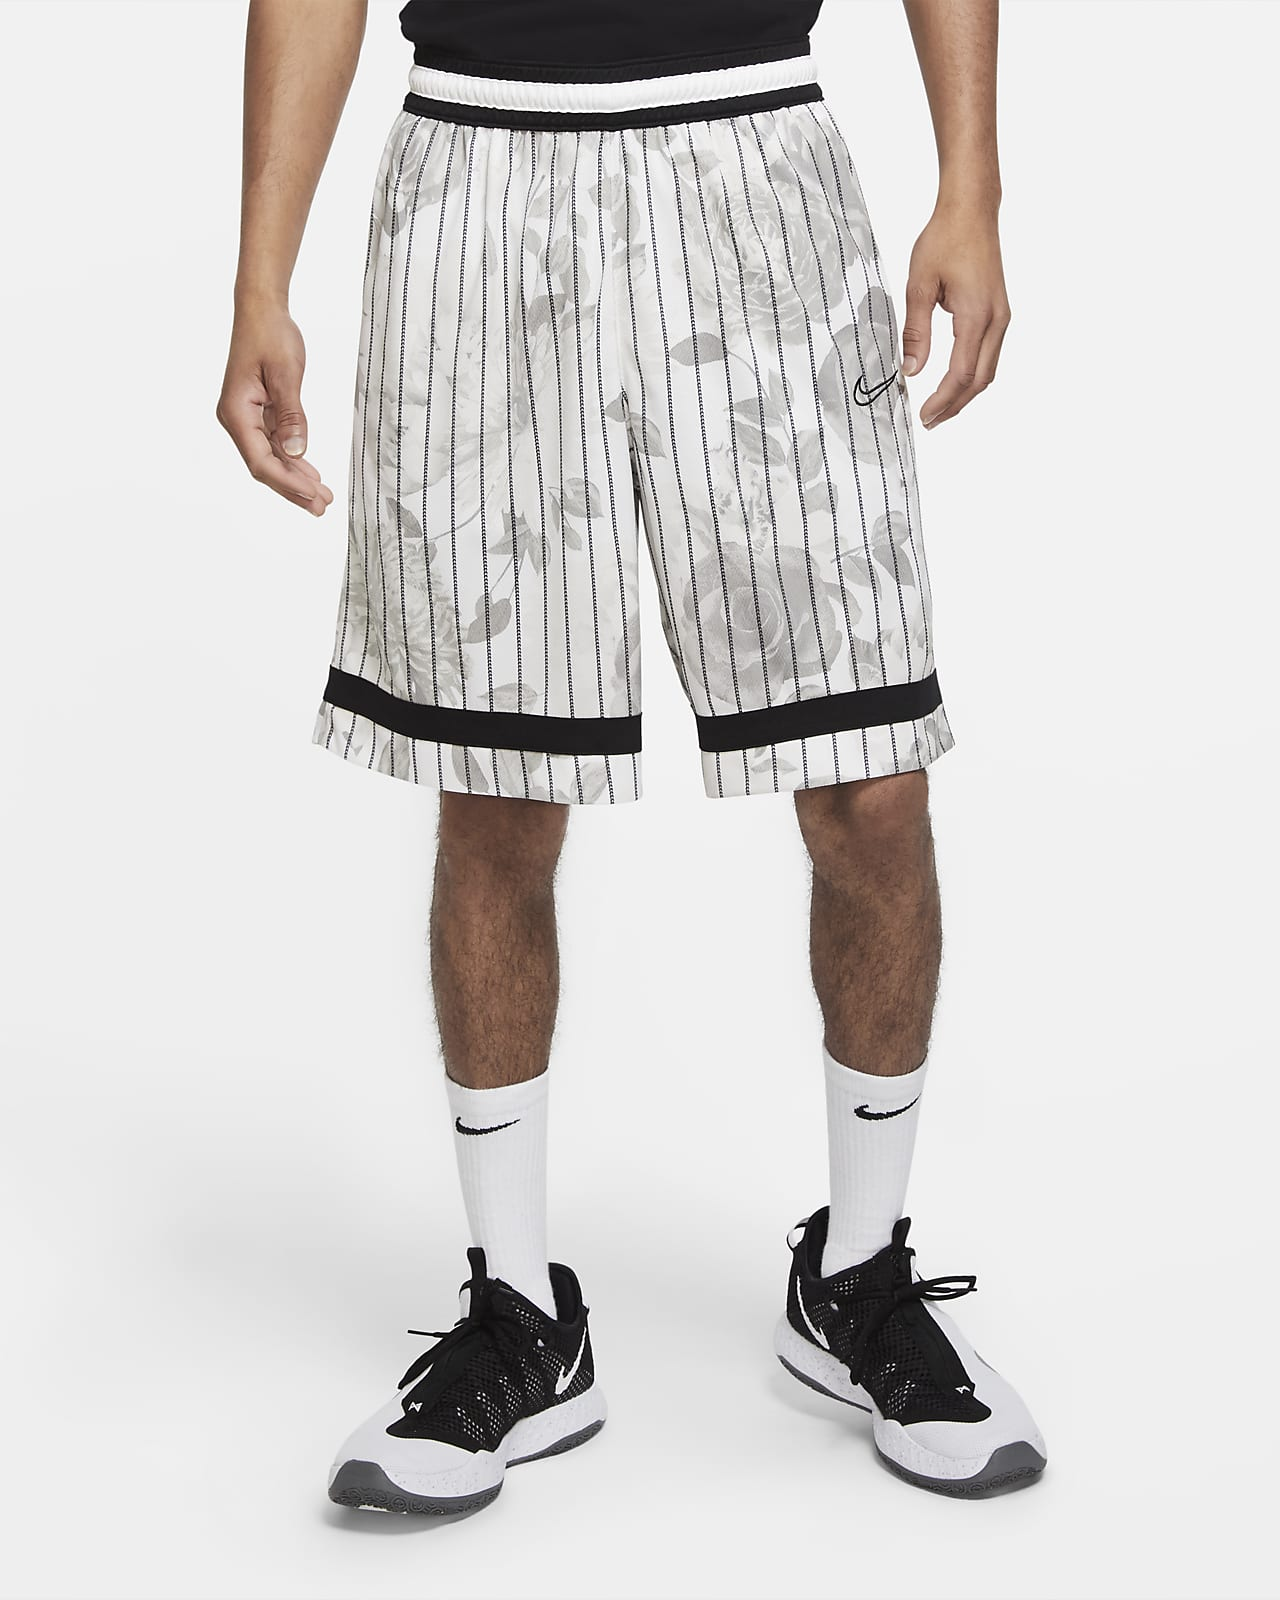 Nike Victory Men's Printed Basketball Shorts